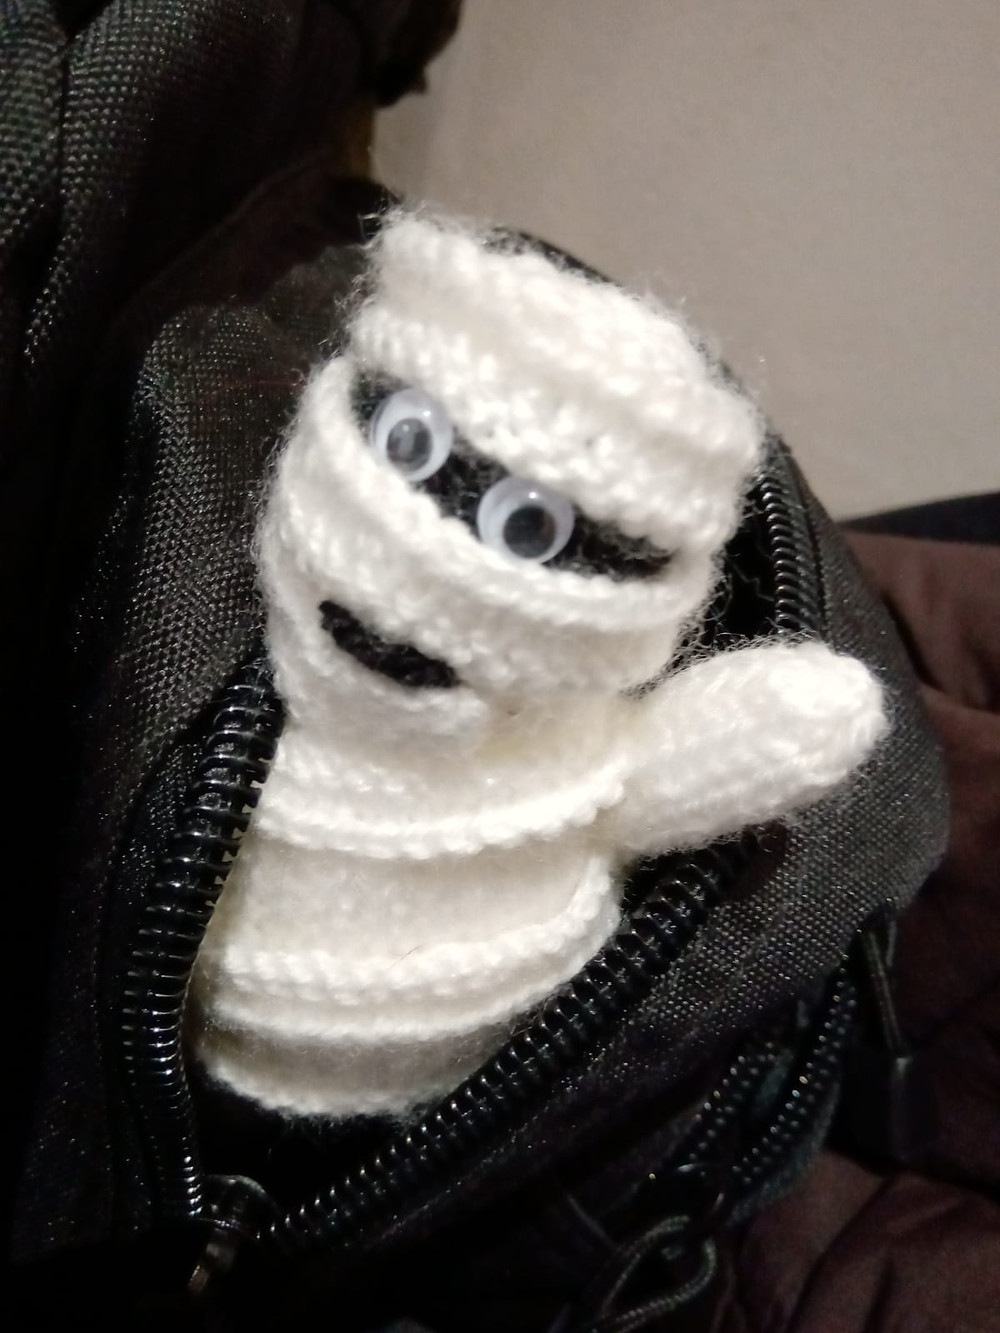 Crochet mummy at Craftaway event at St Mary's Church